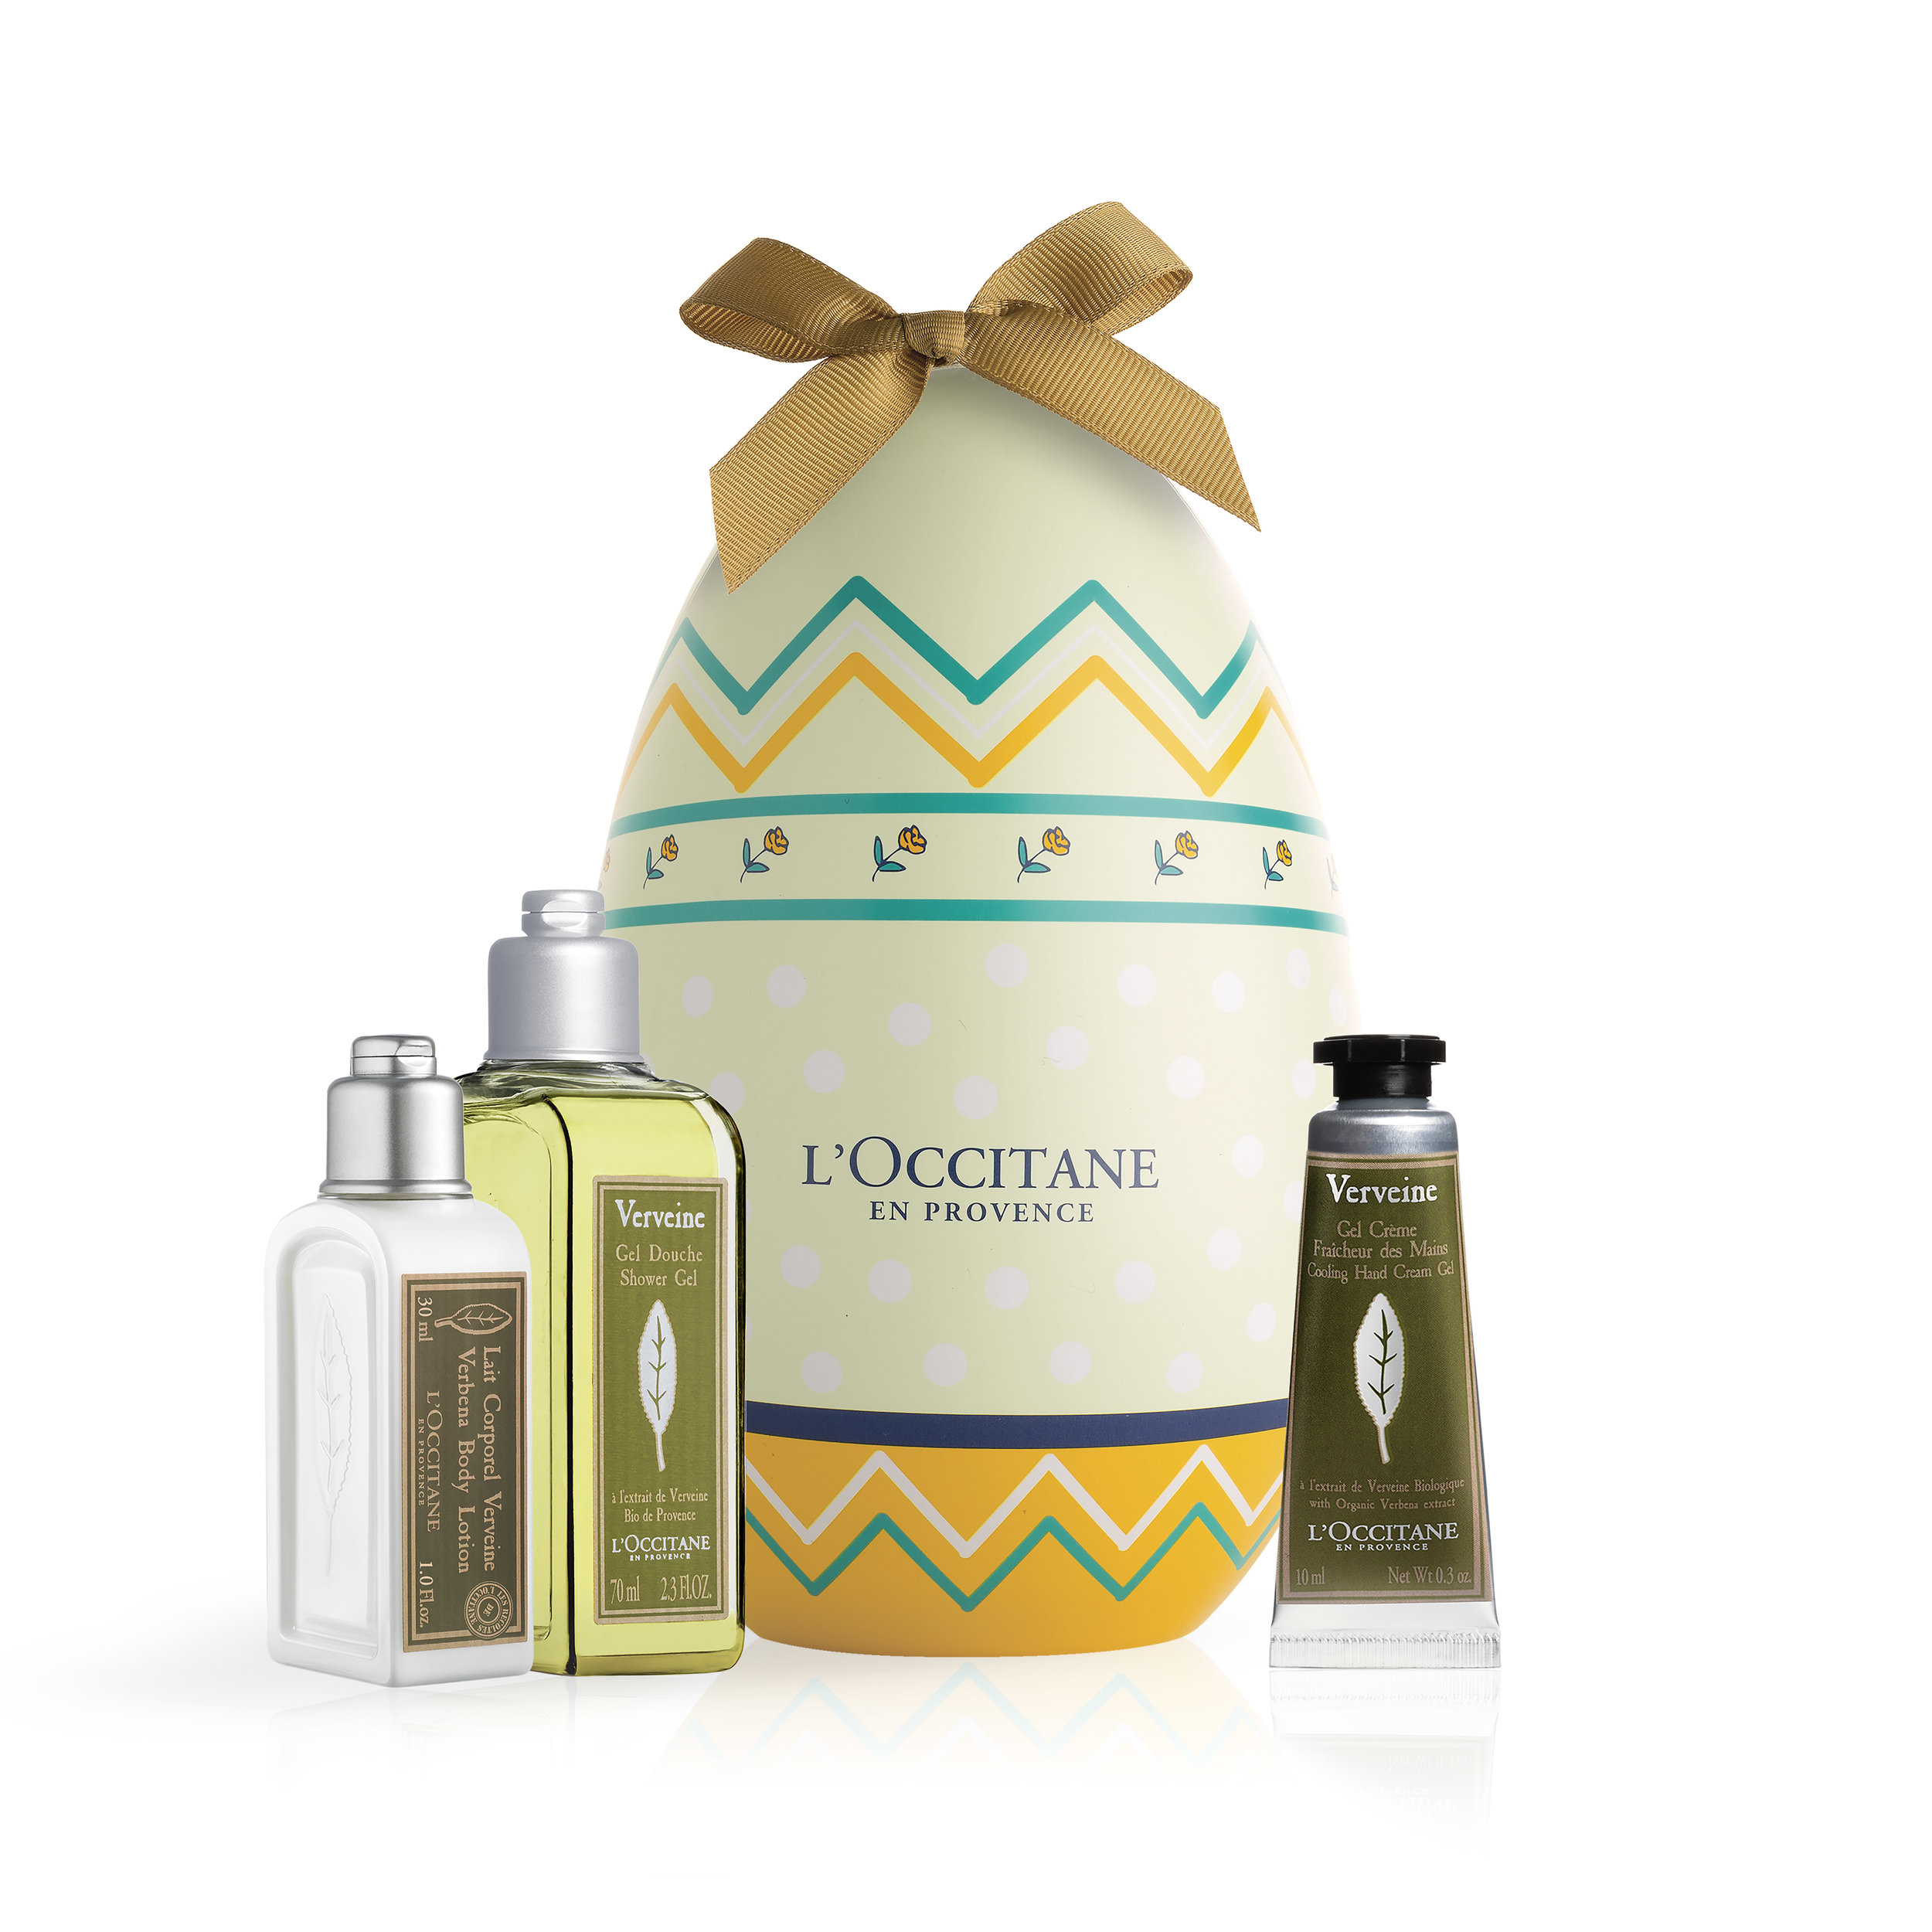 L'OCCITANE Verbena Easter Egg with products .jpeg